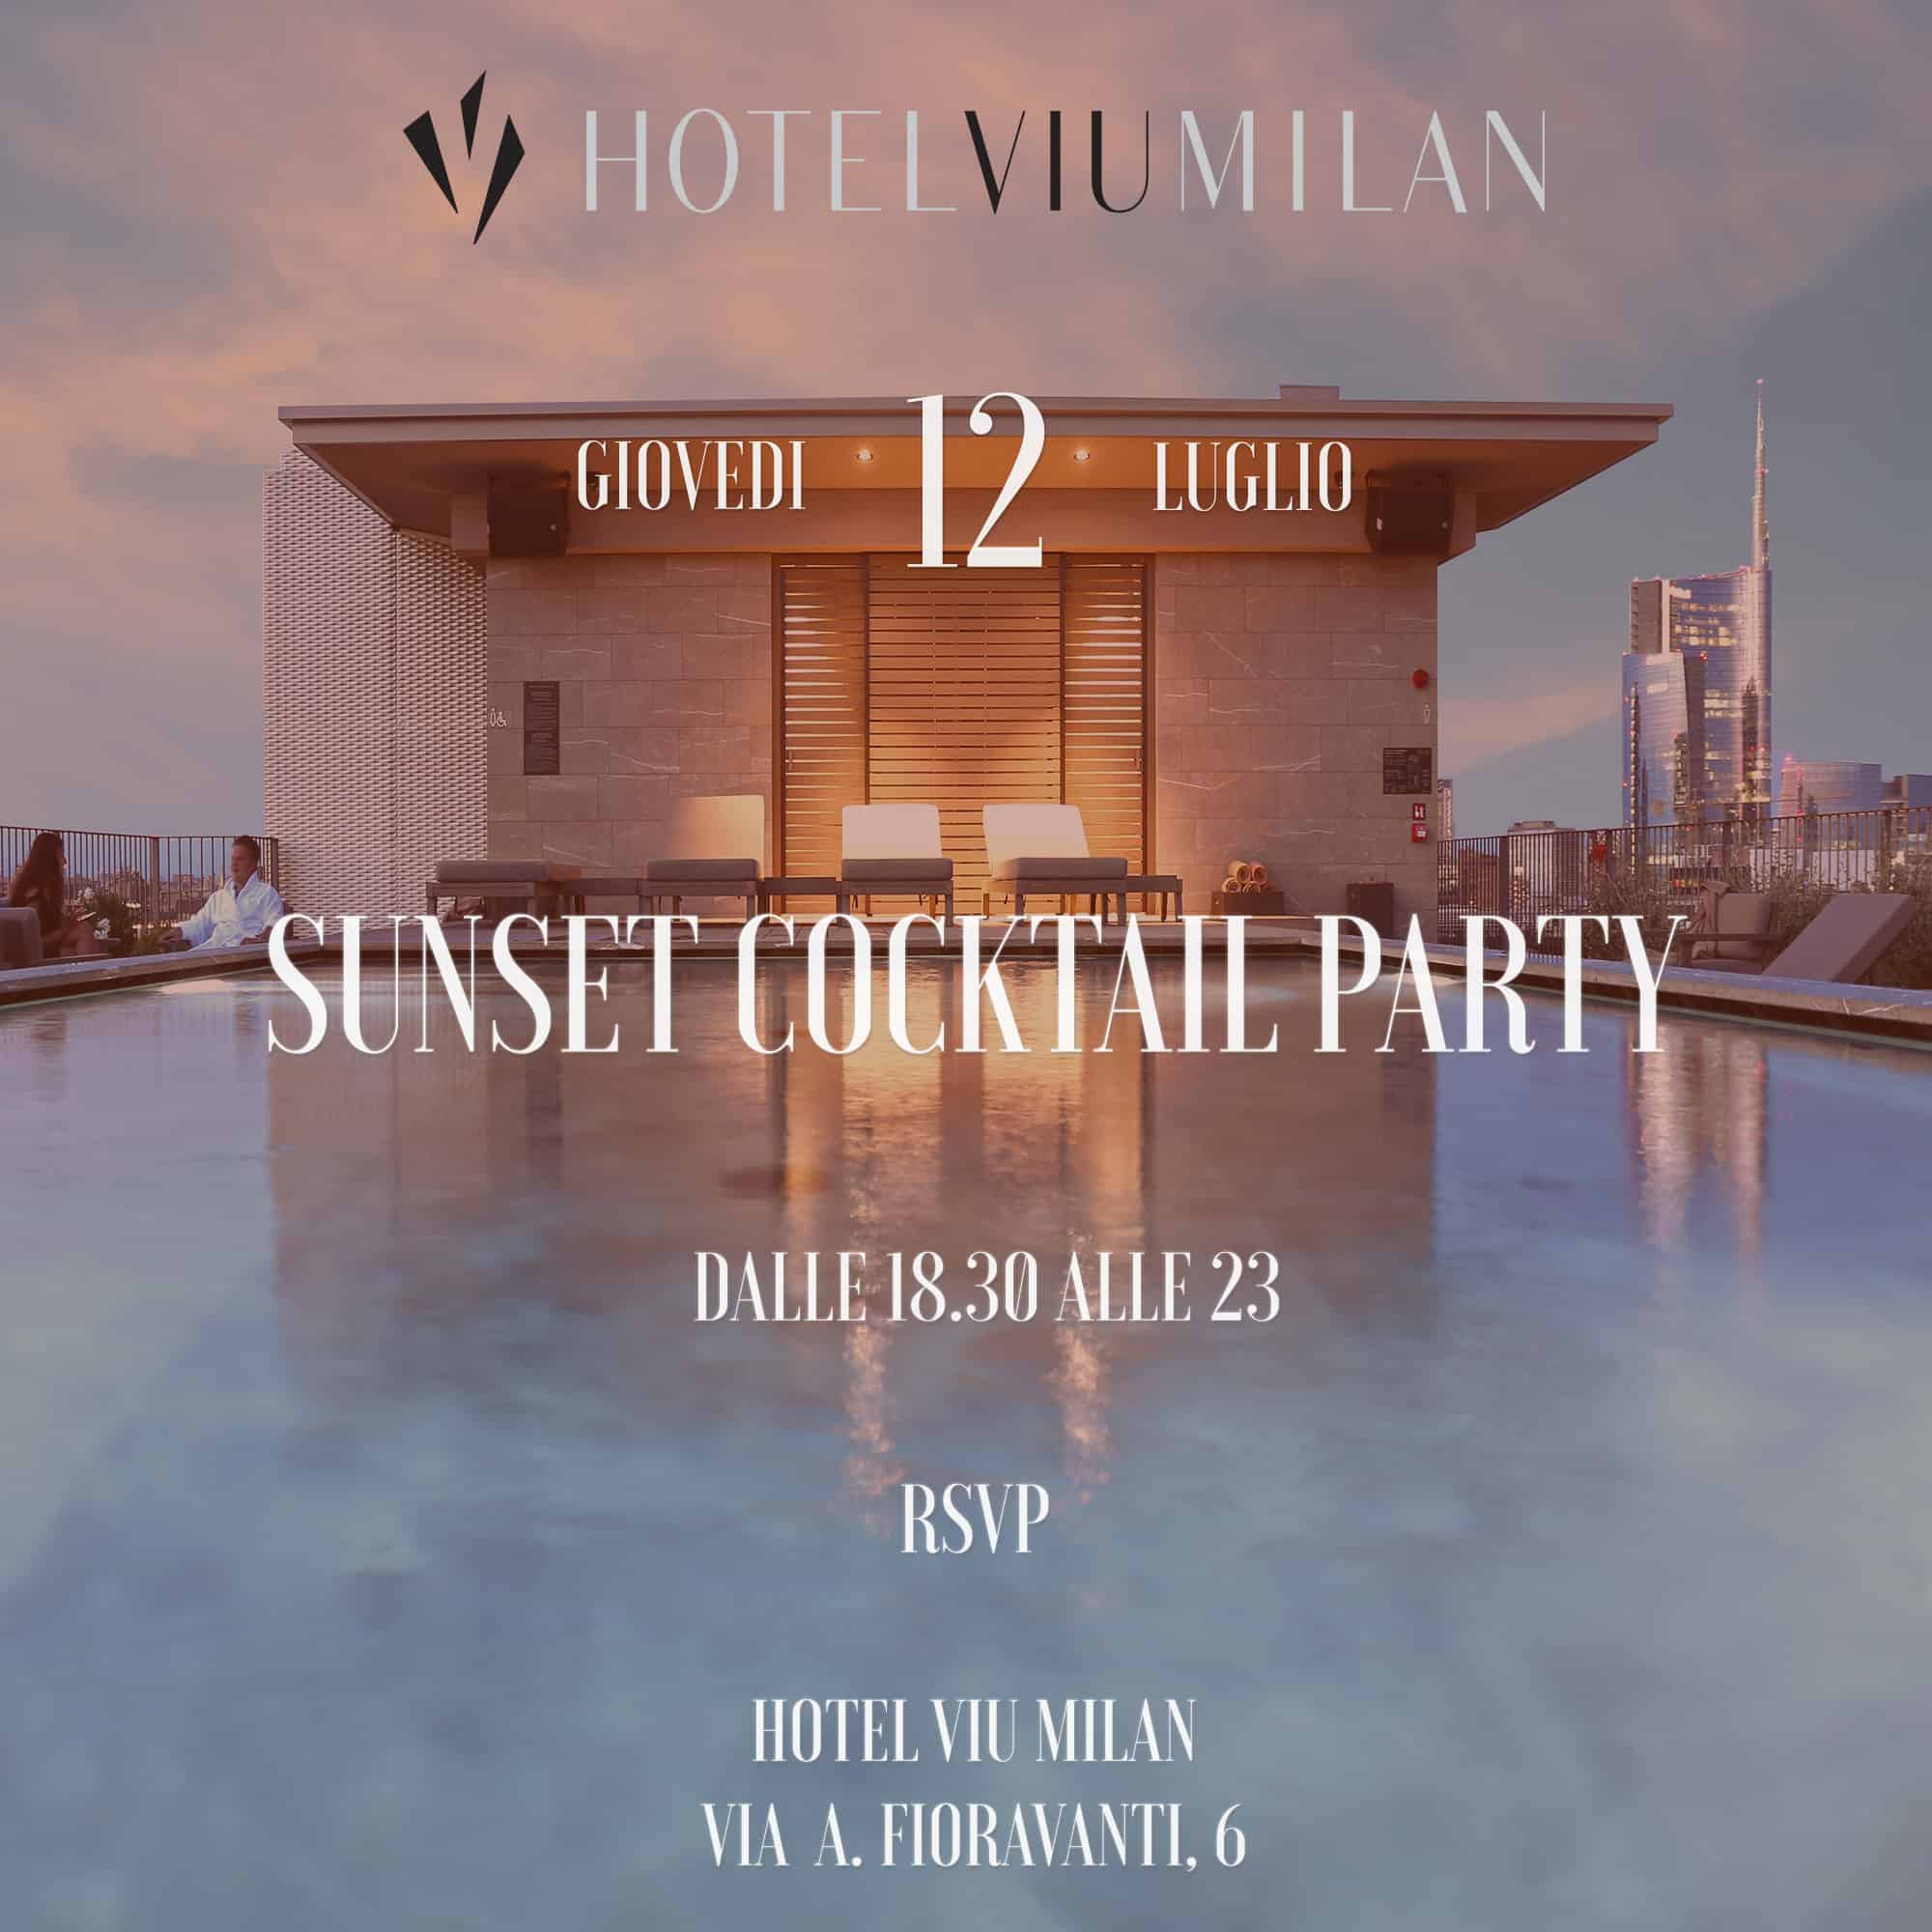 Hotel Viu - Sunset Cocktil Party